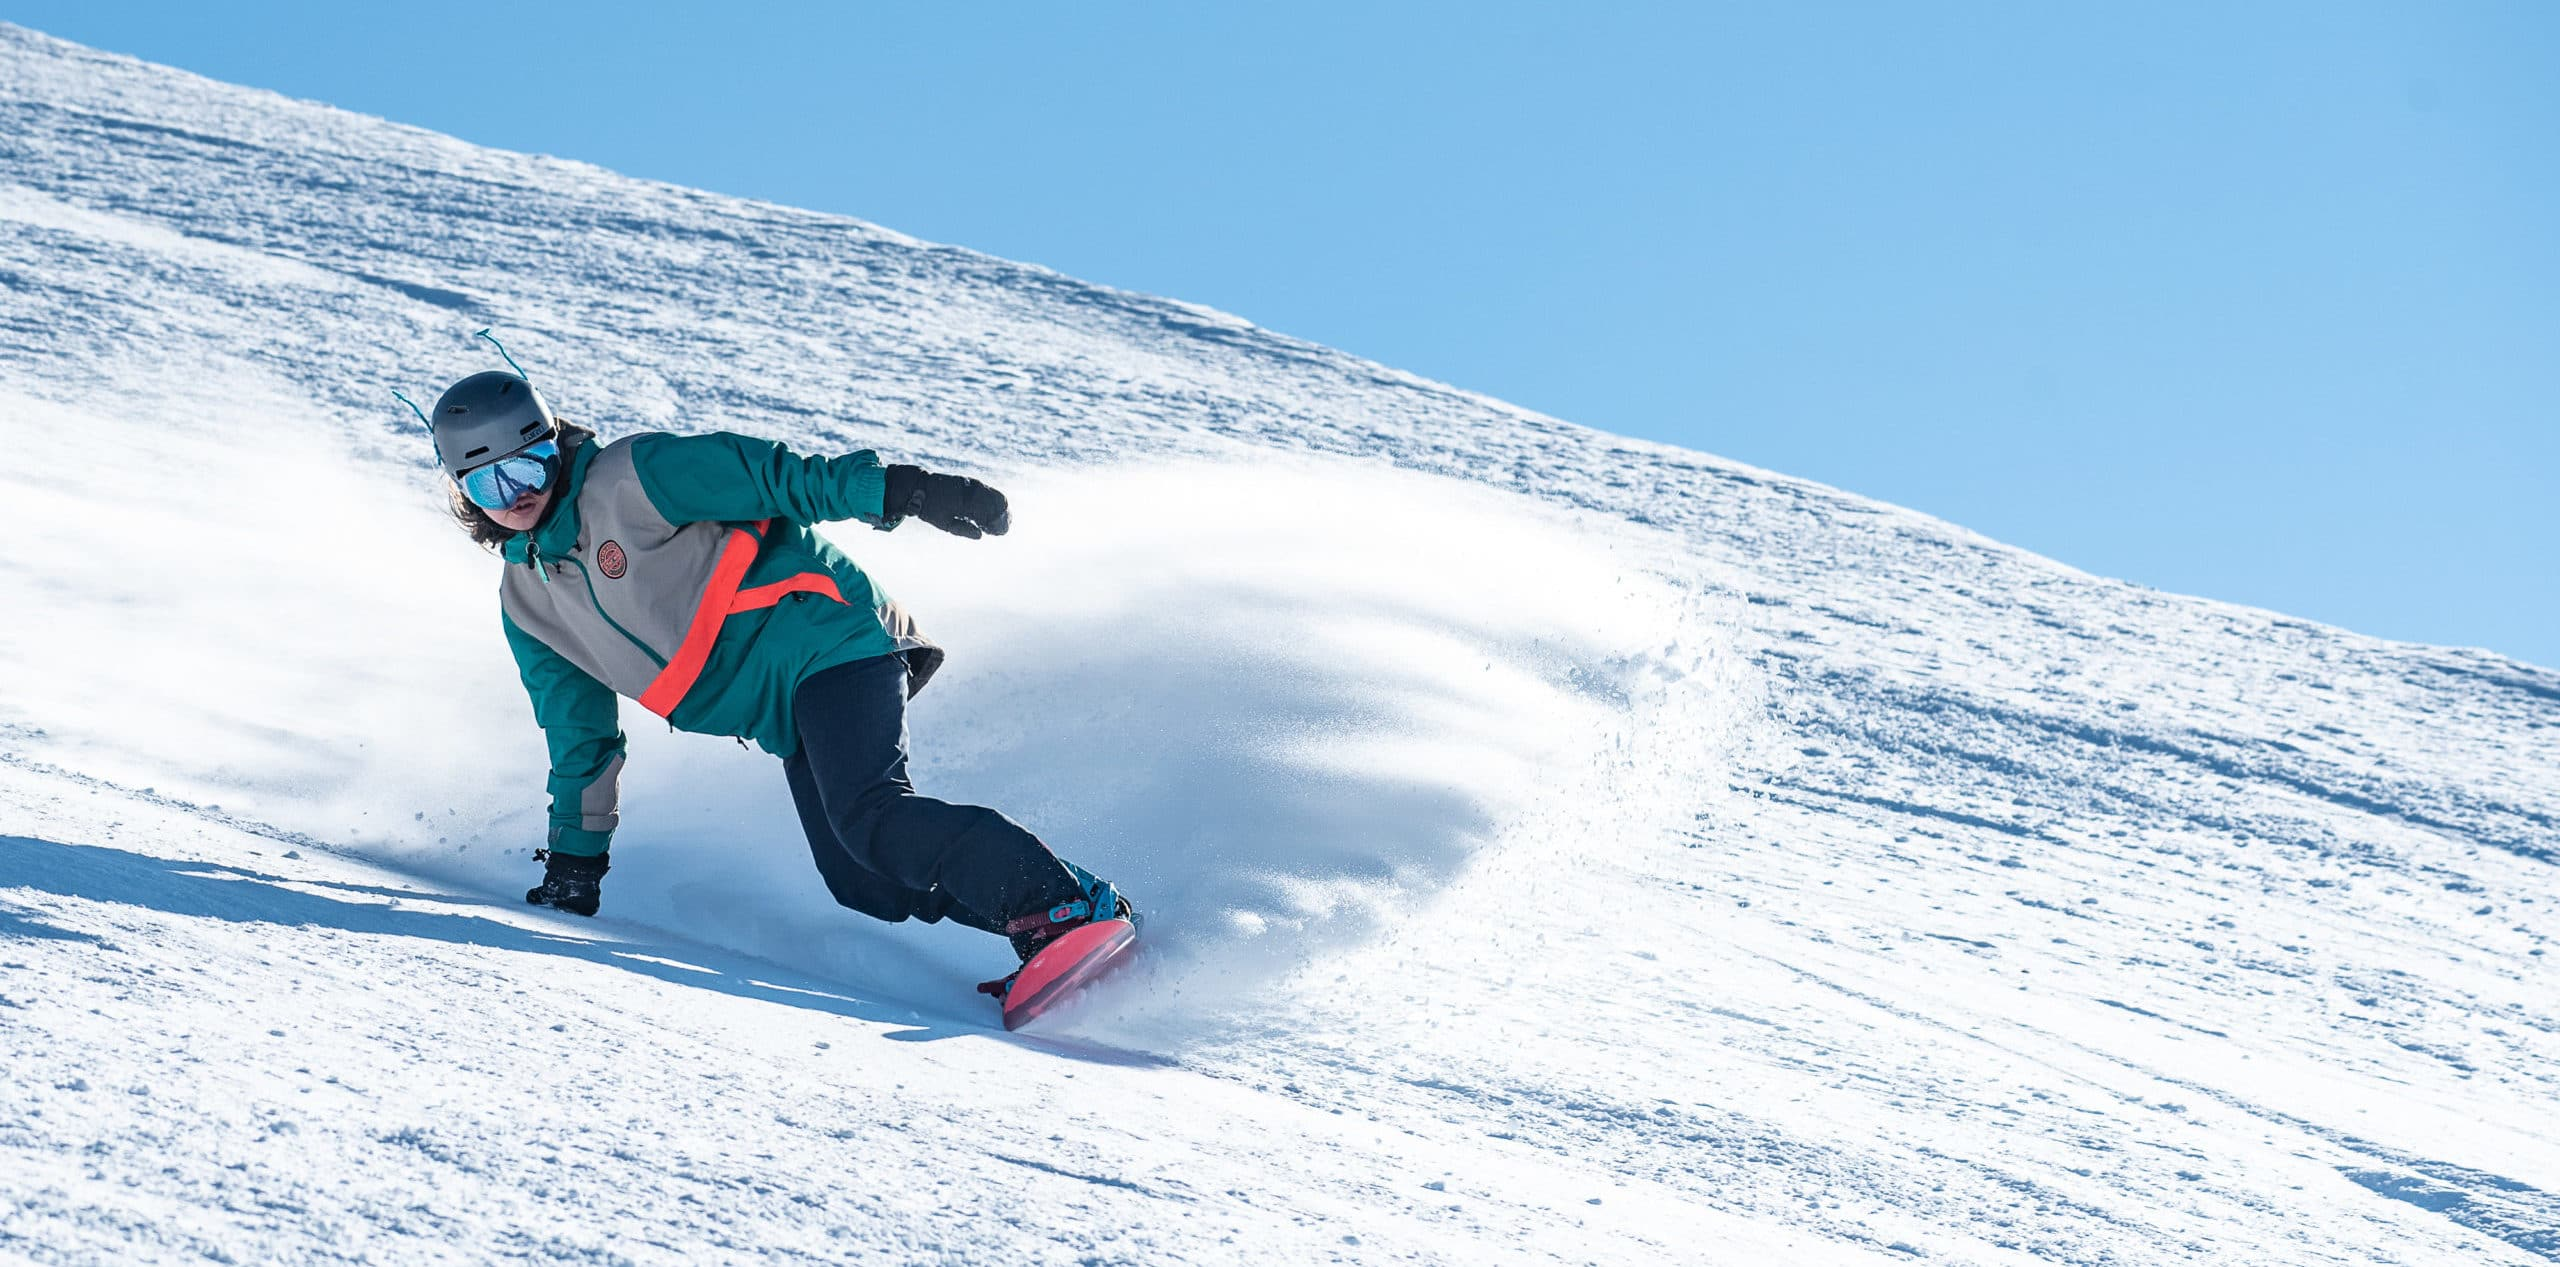 A photograph of a young woman snowboarding. The sky is blue and she is surrounded by a spray of powder snow.